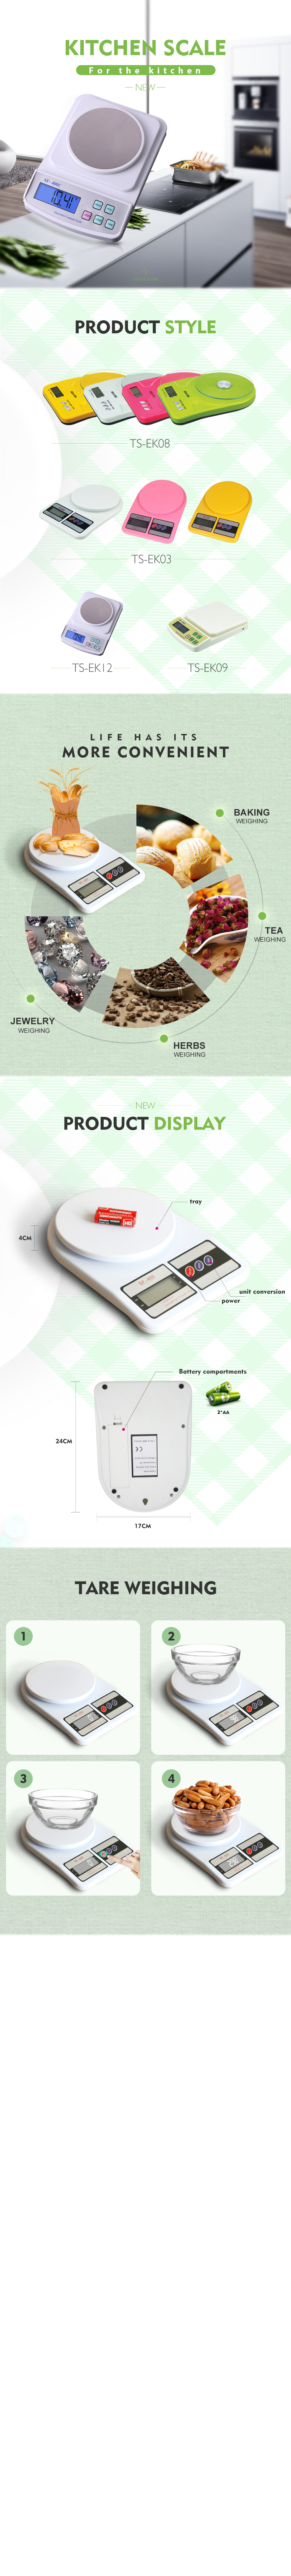 10 kg 0.1 g digital weighing scale chinese electronic kitchen scale with ABS Plastic material